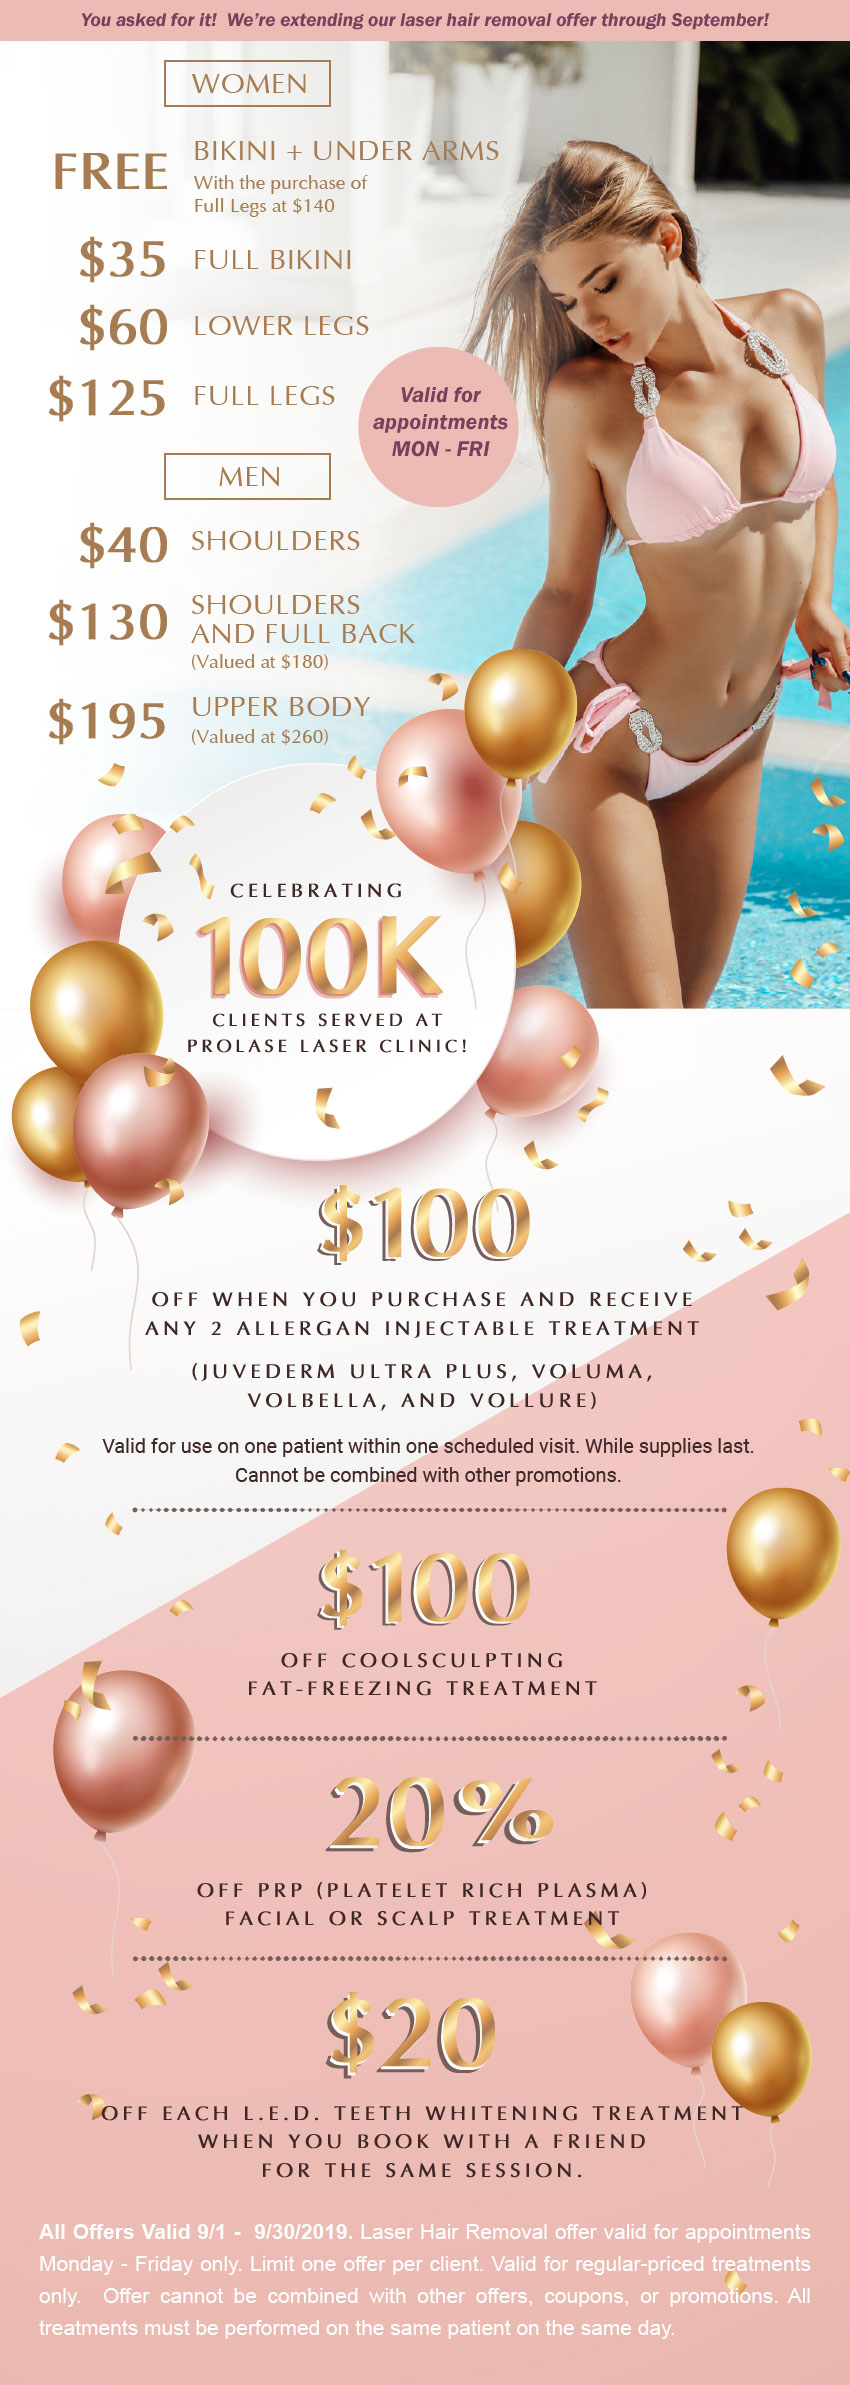 This is an image the monthly special promotion offered by Prolase for laser hair removal and other aesthetic treatments. To learn more about all special offers for the month, please call 818-507-0909